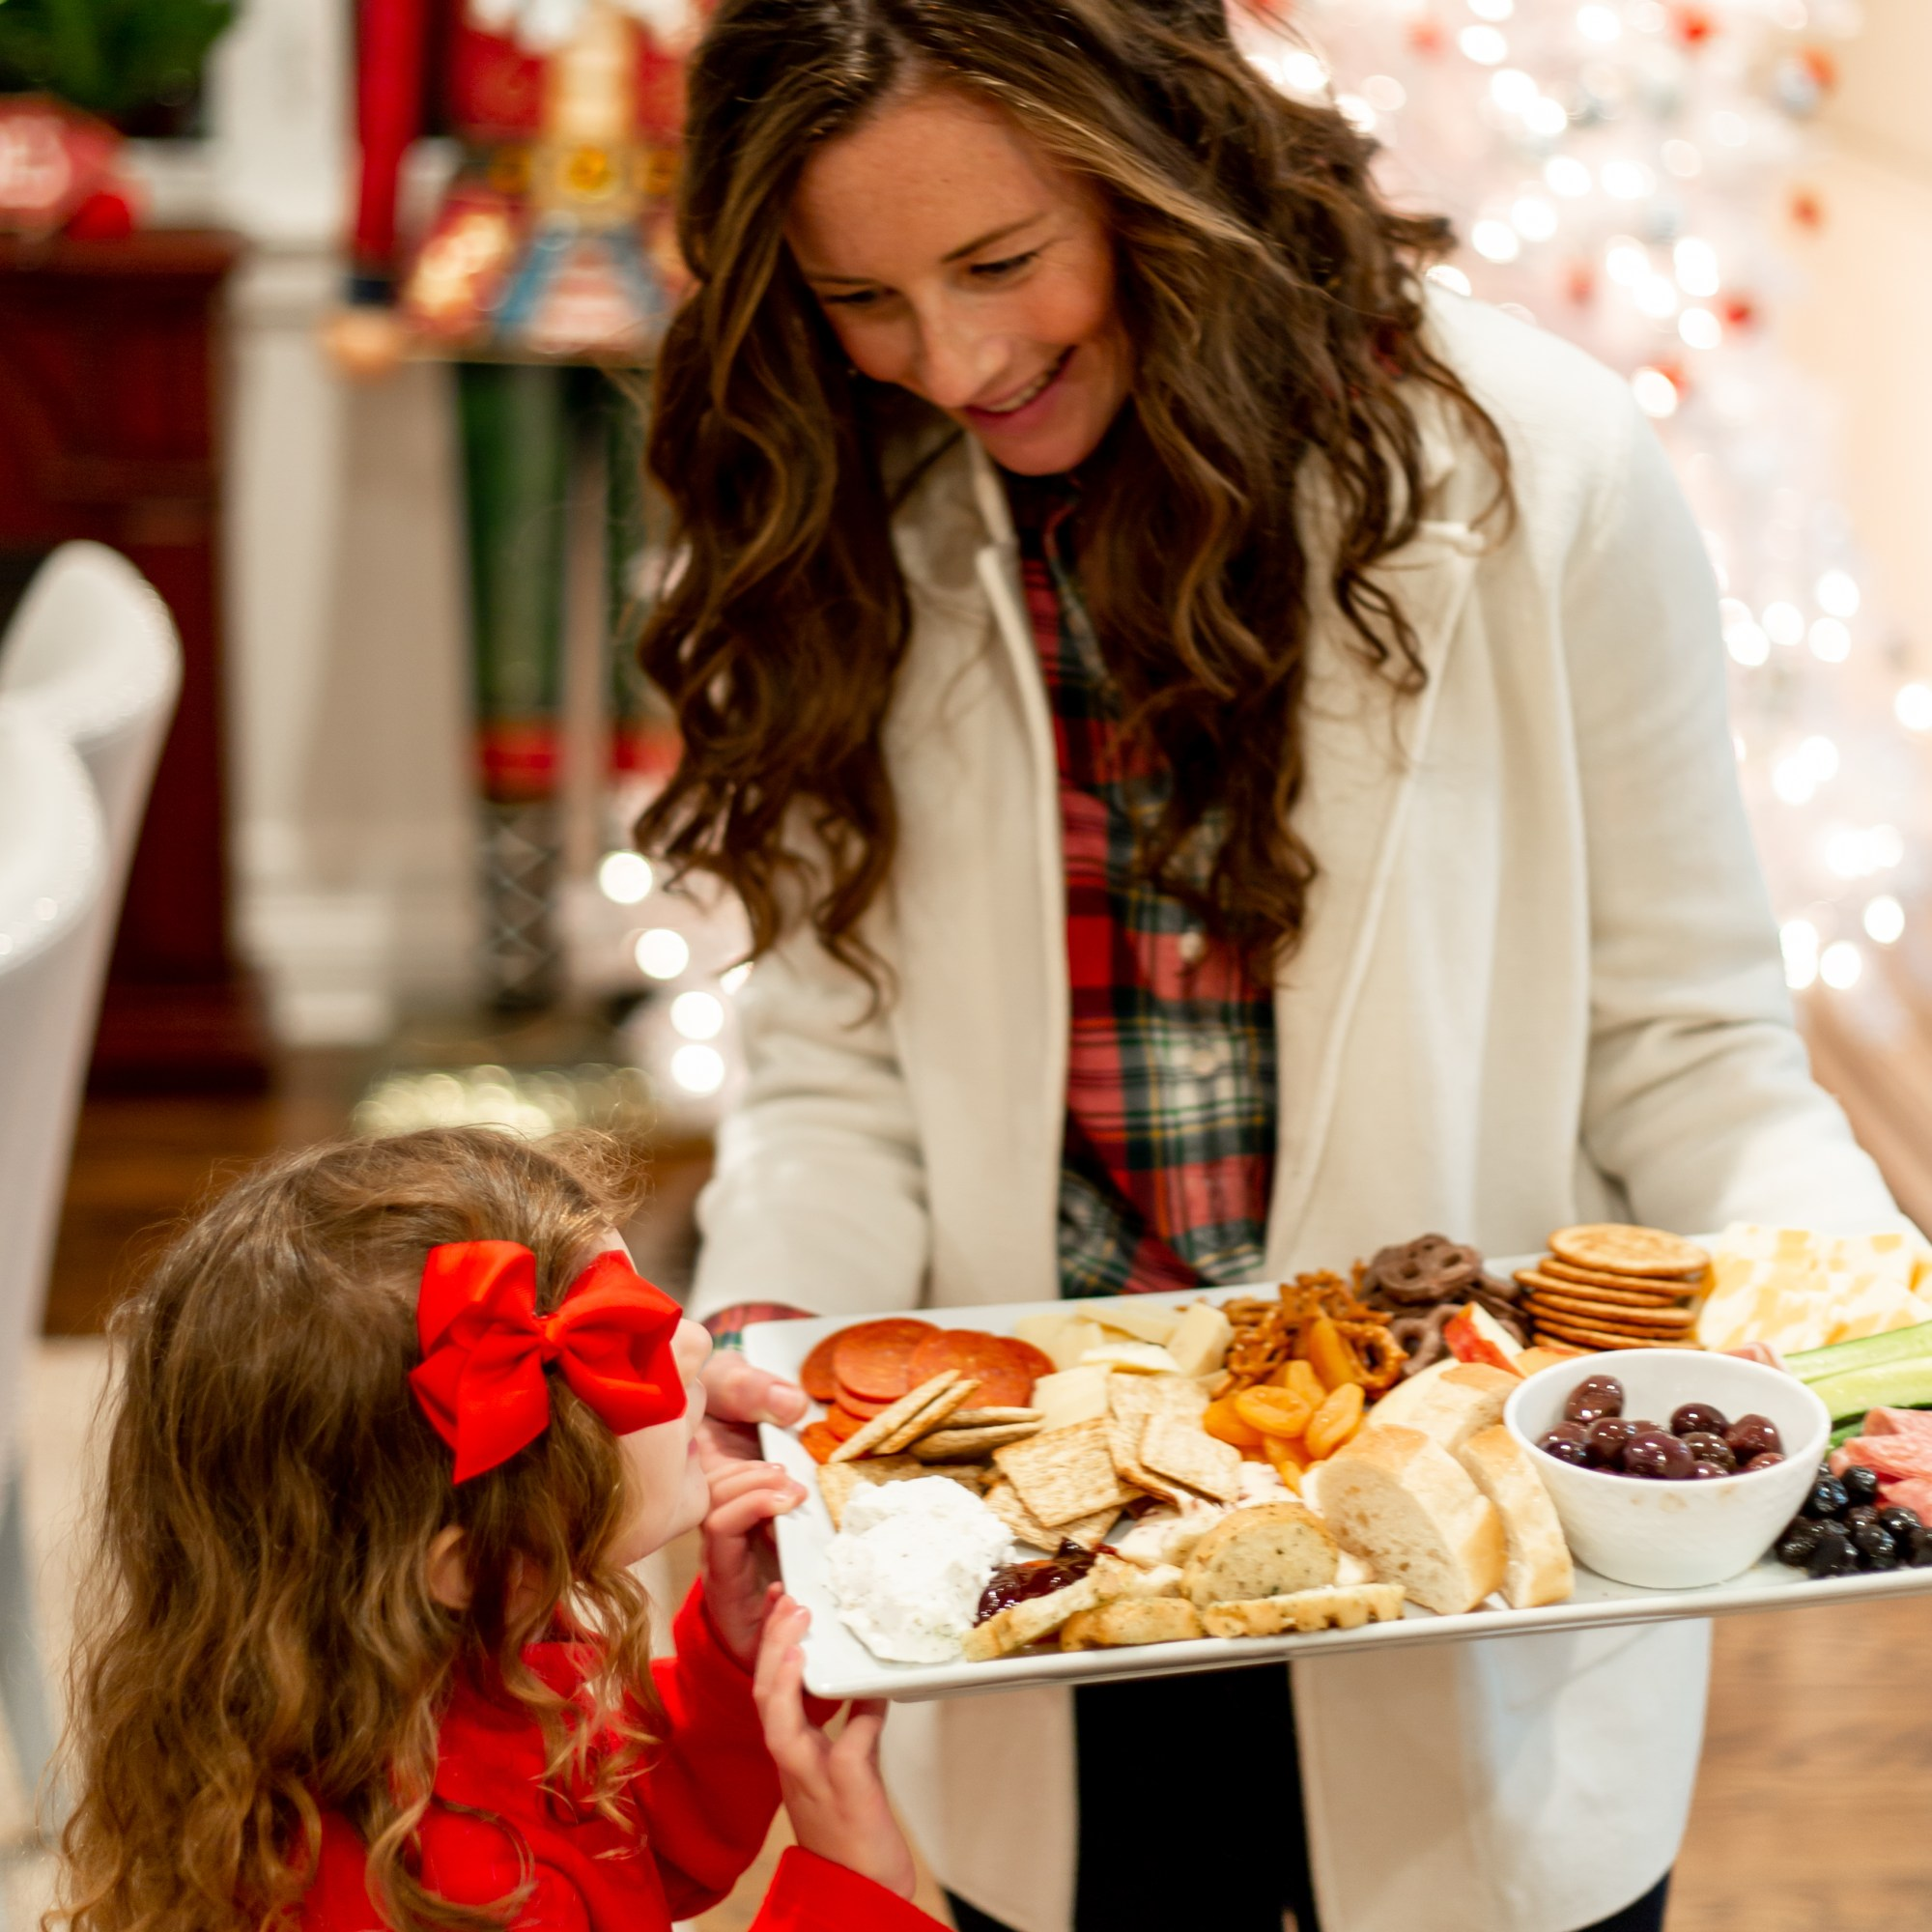 Life lately showing daughter holiday charcuterie board